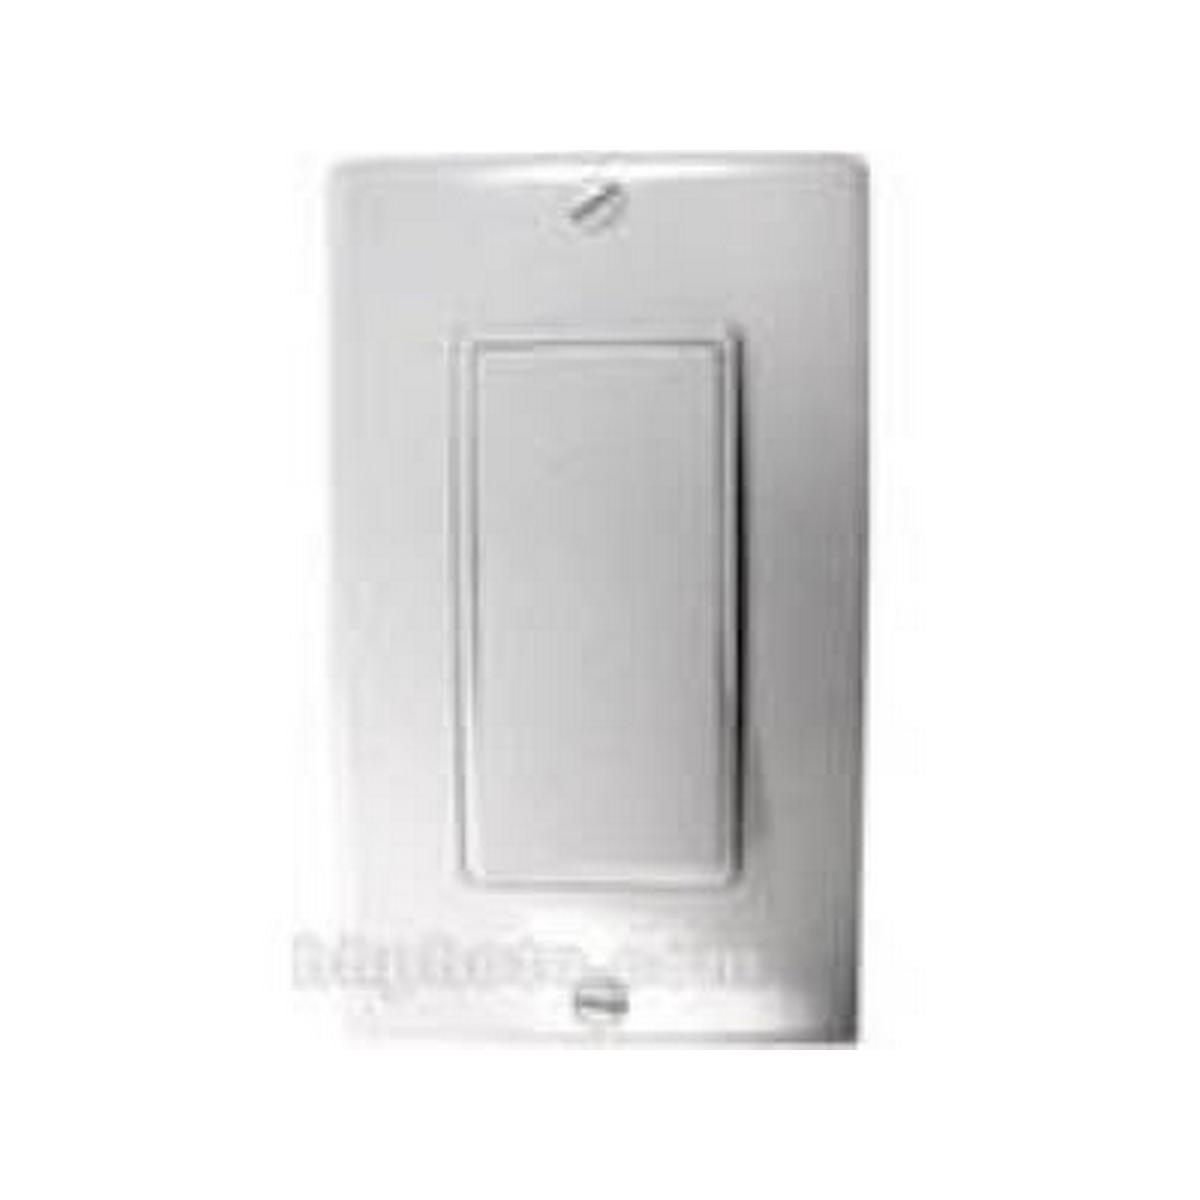 Decora Rocker Wall Switch & Plate - White